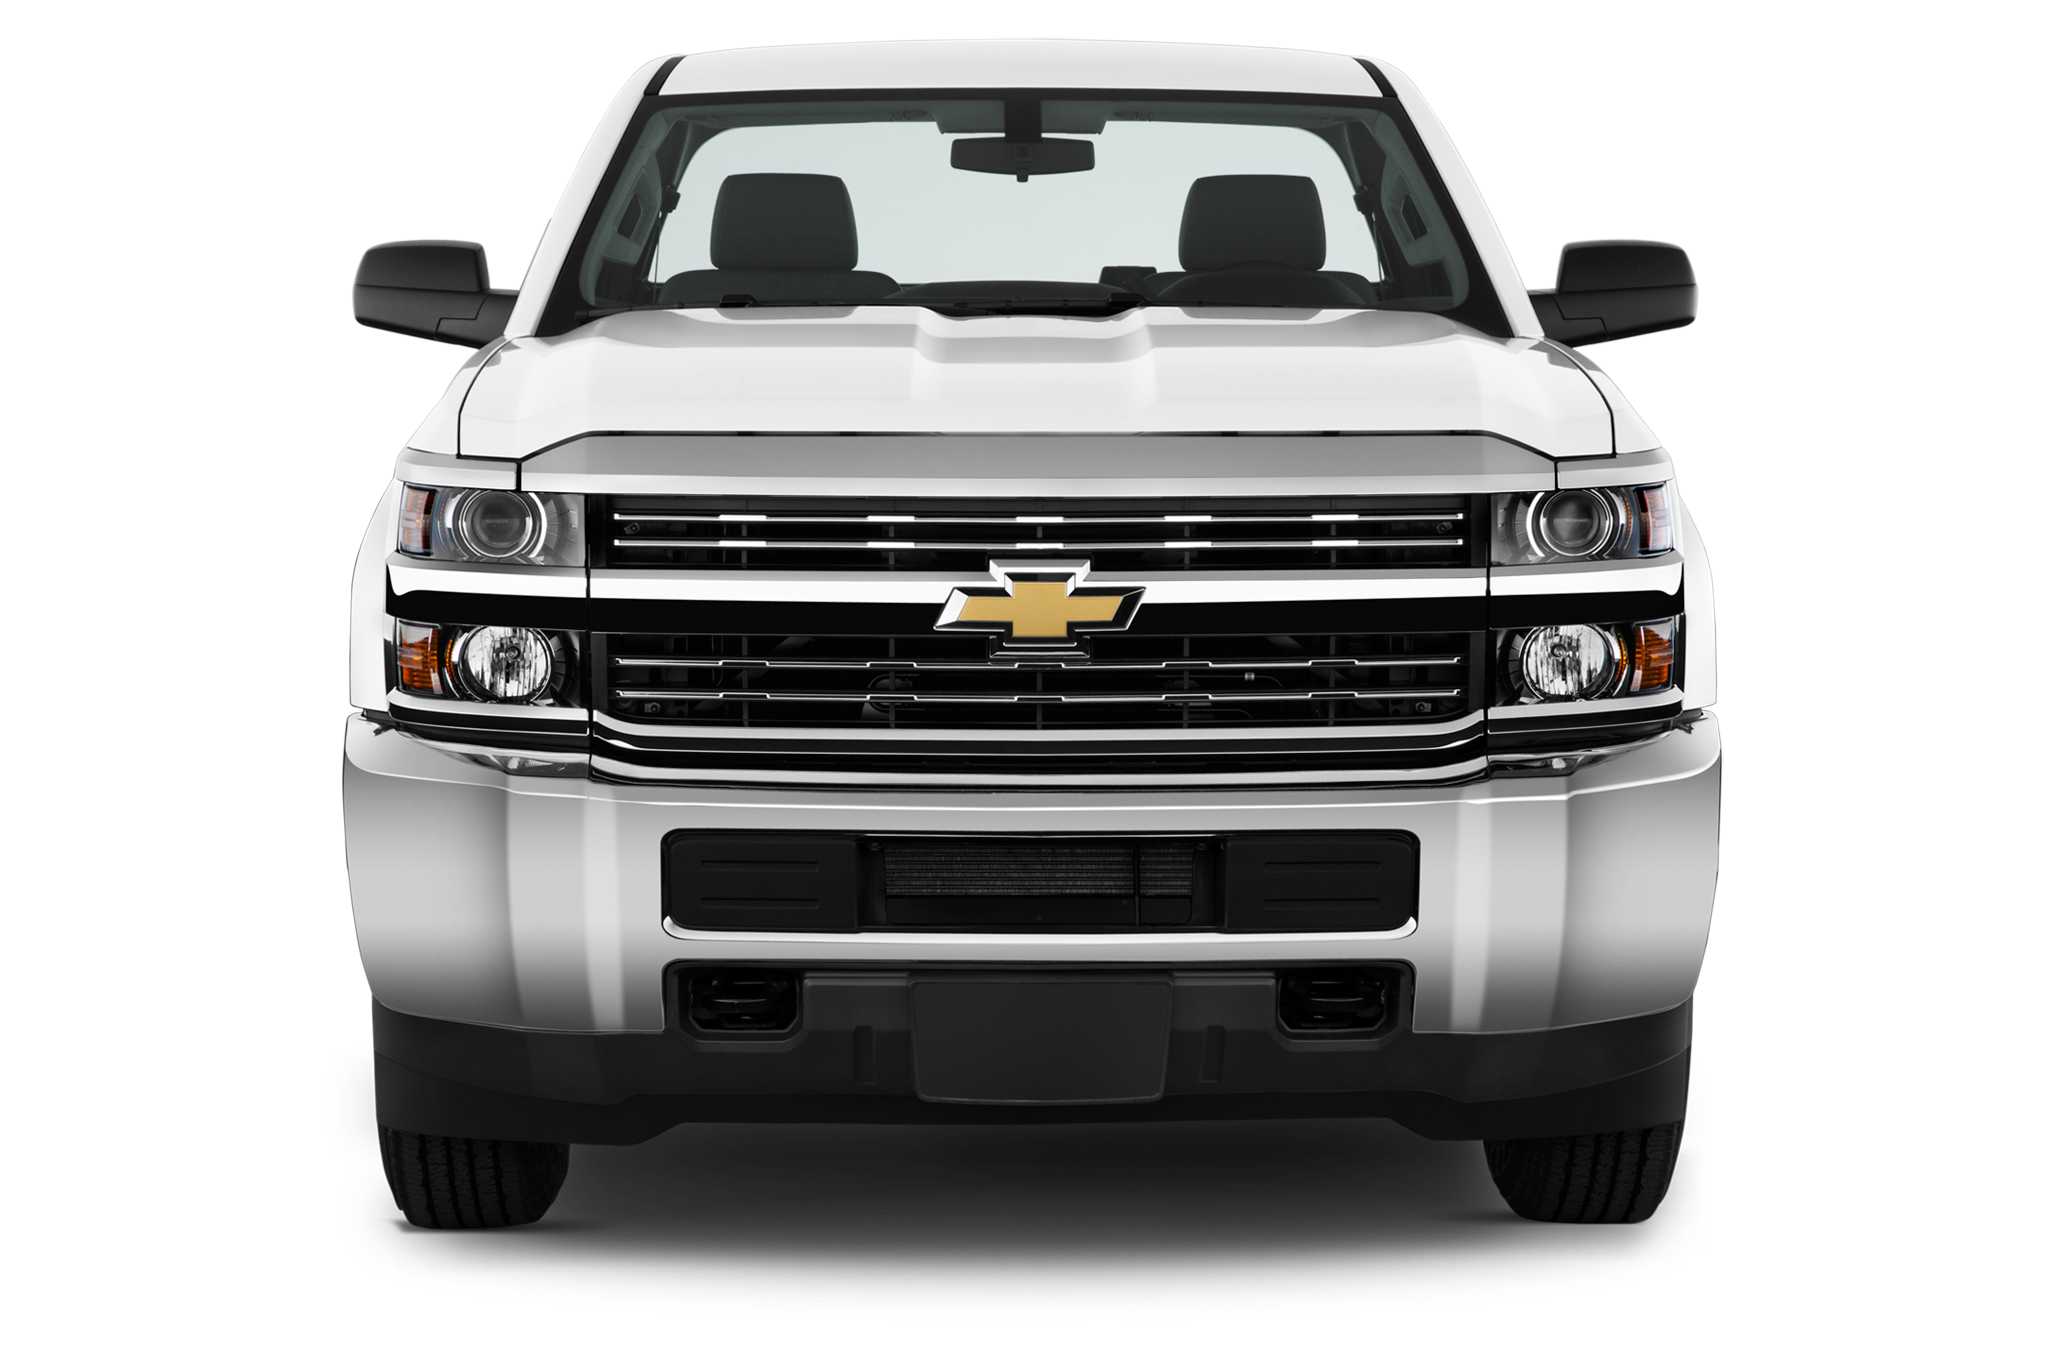 Chevy drawing duramax. Chevrolet silverado hd